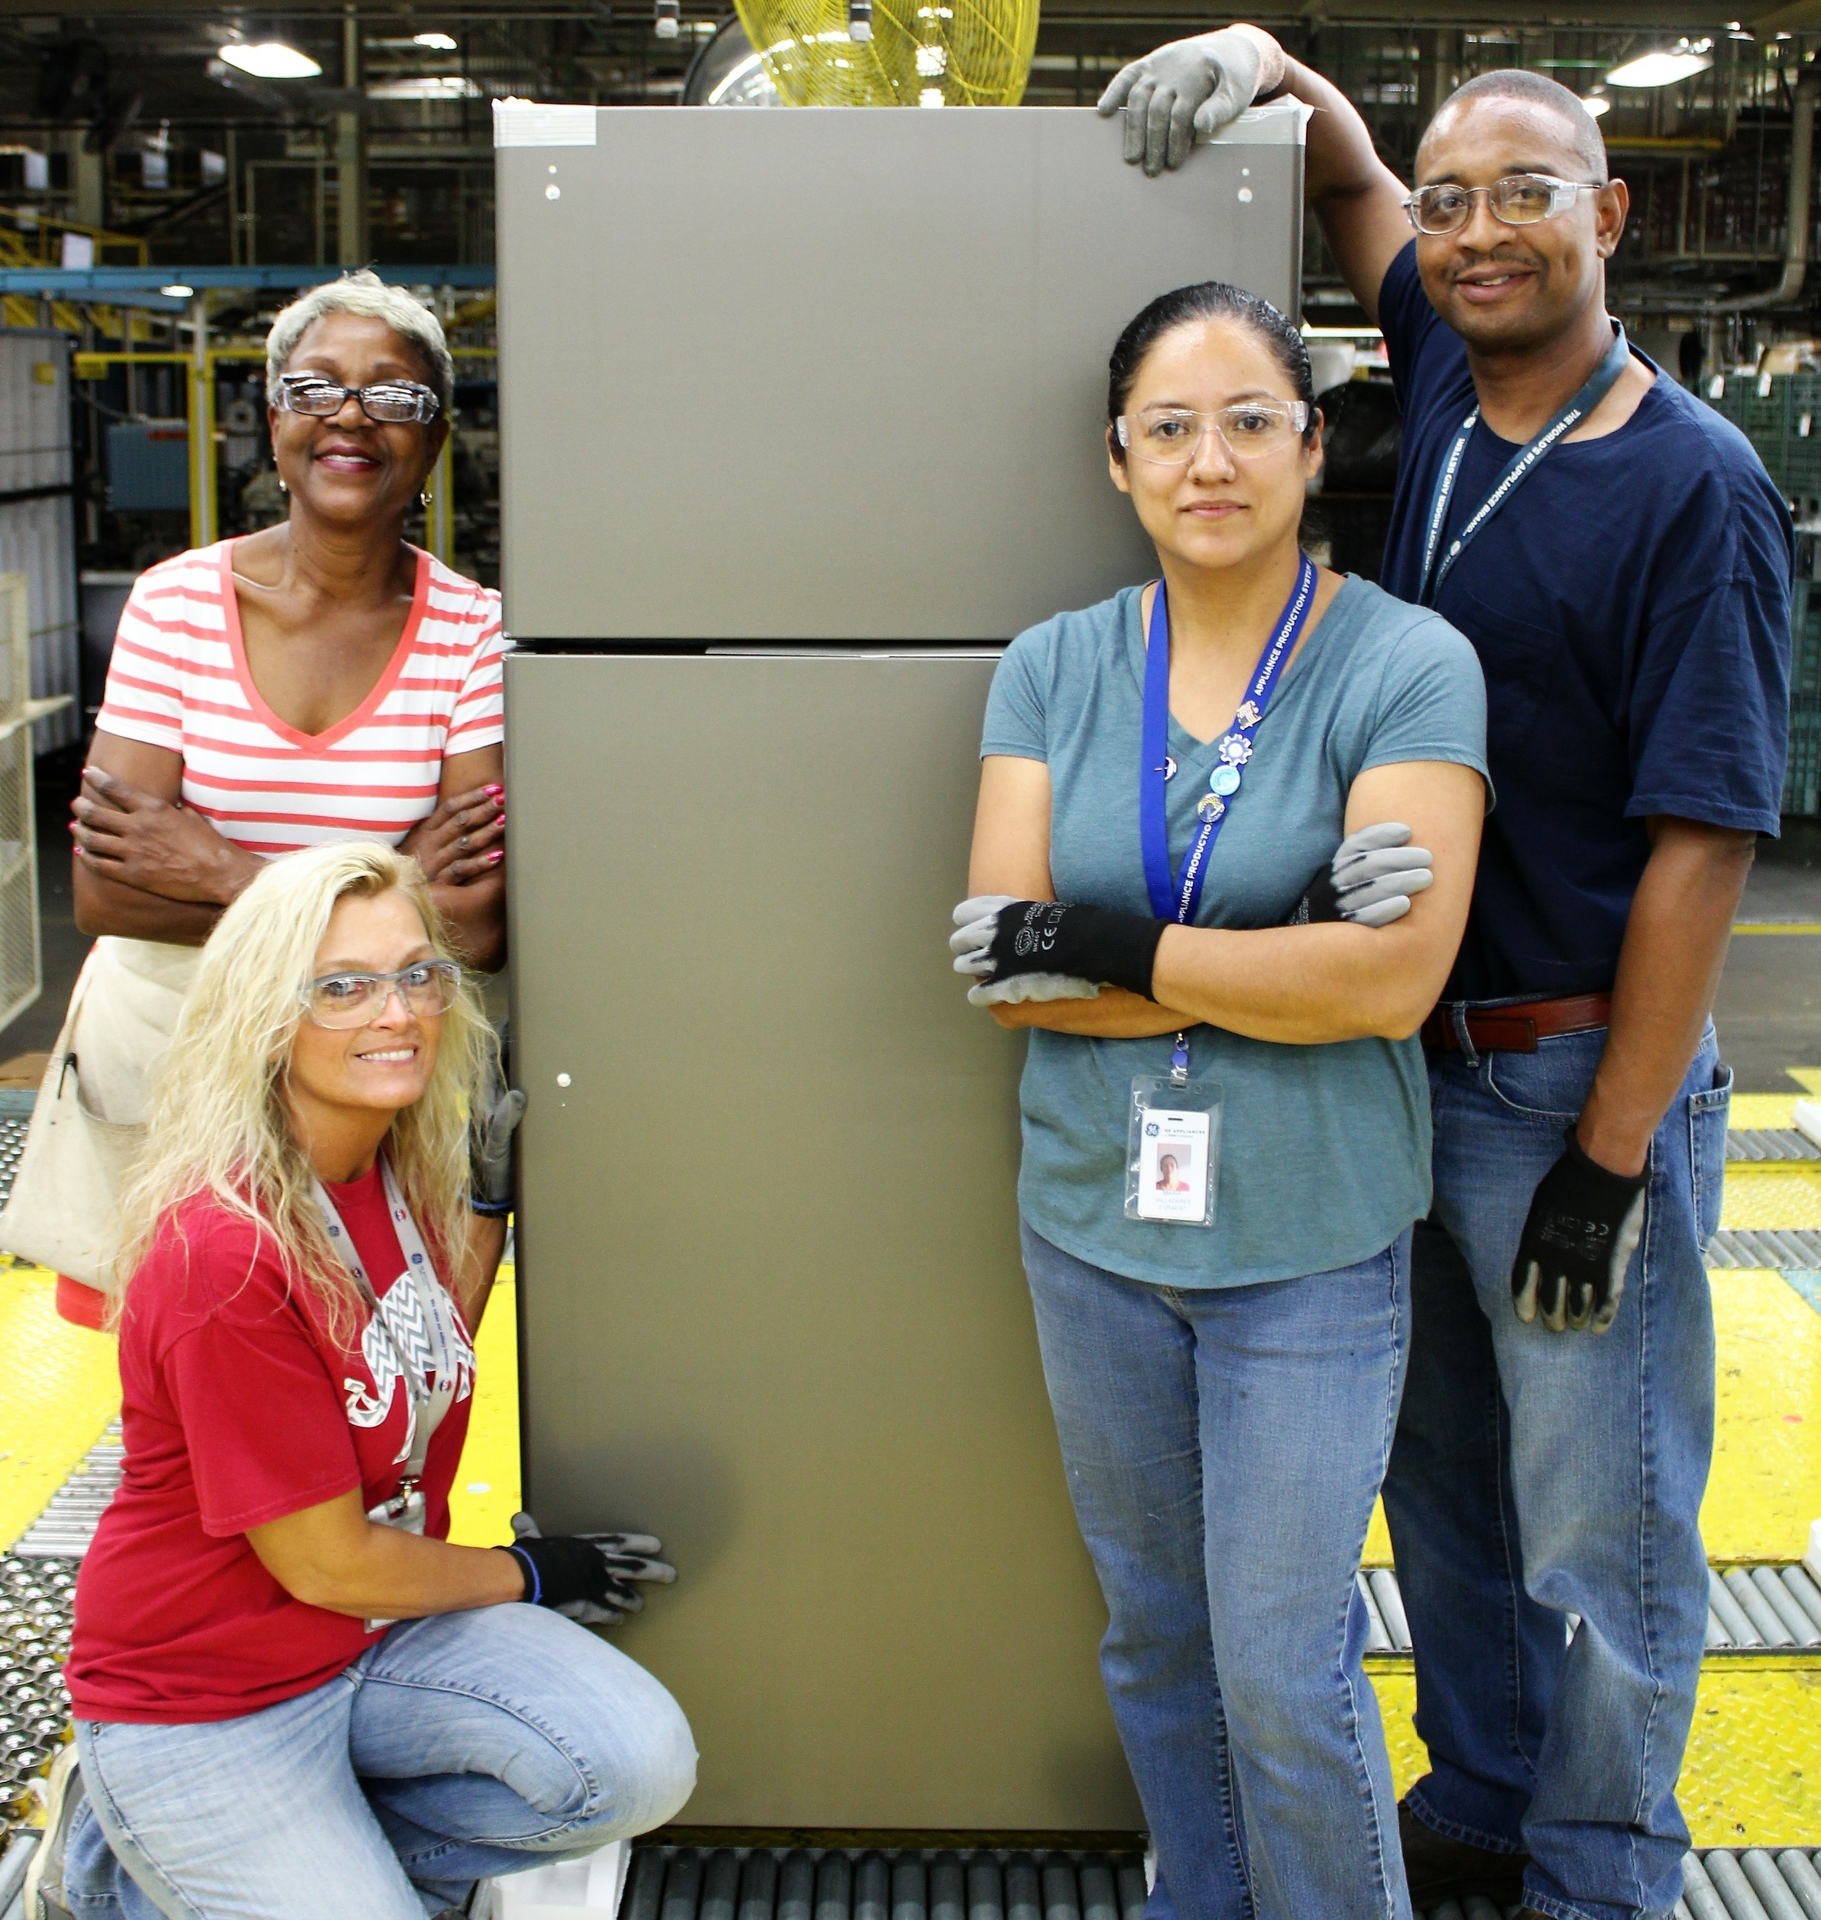 Decatur Employees with Refrigerator